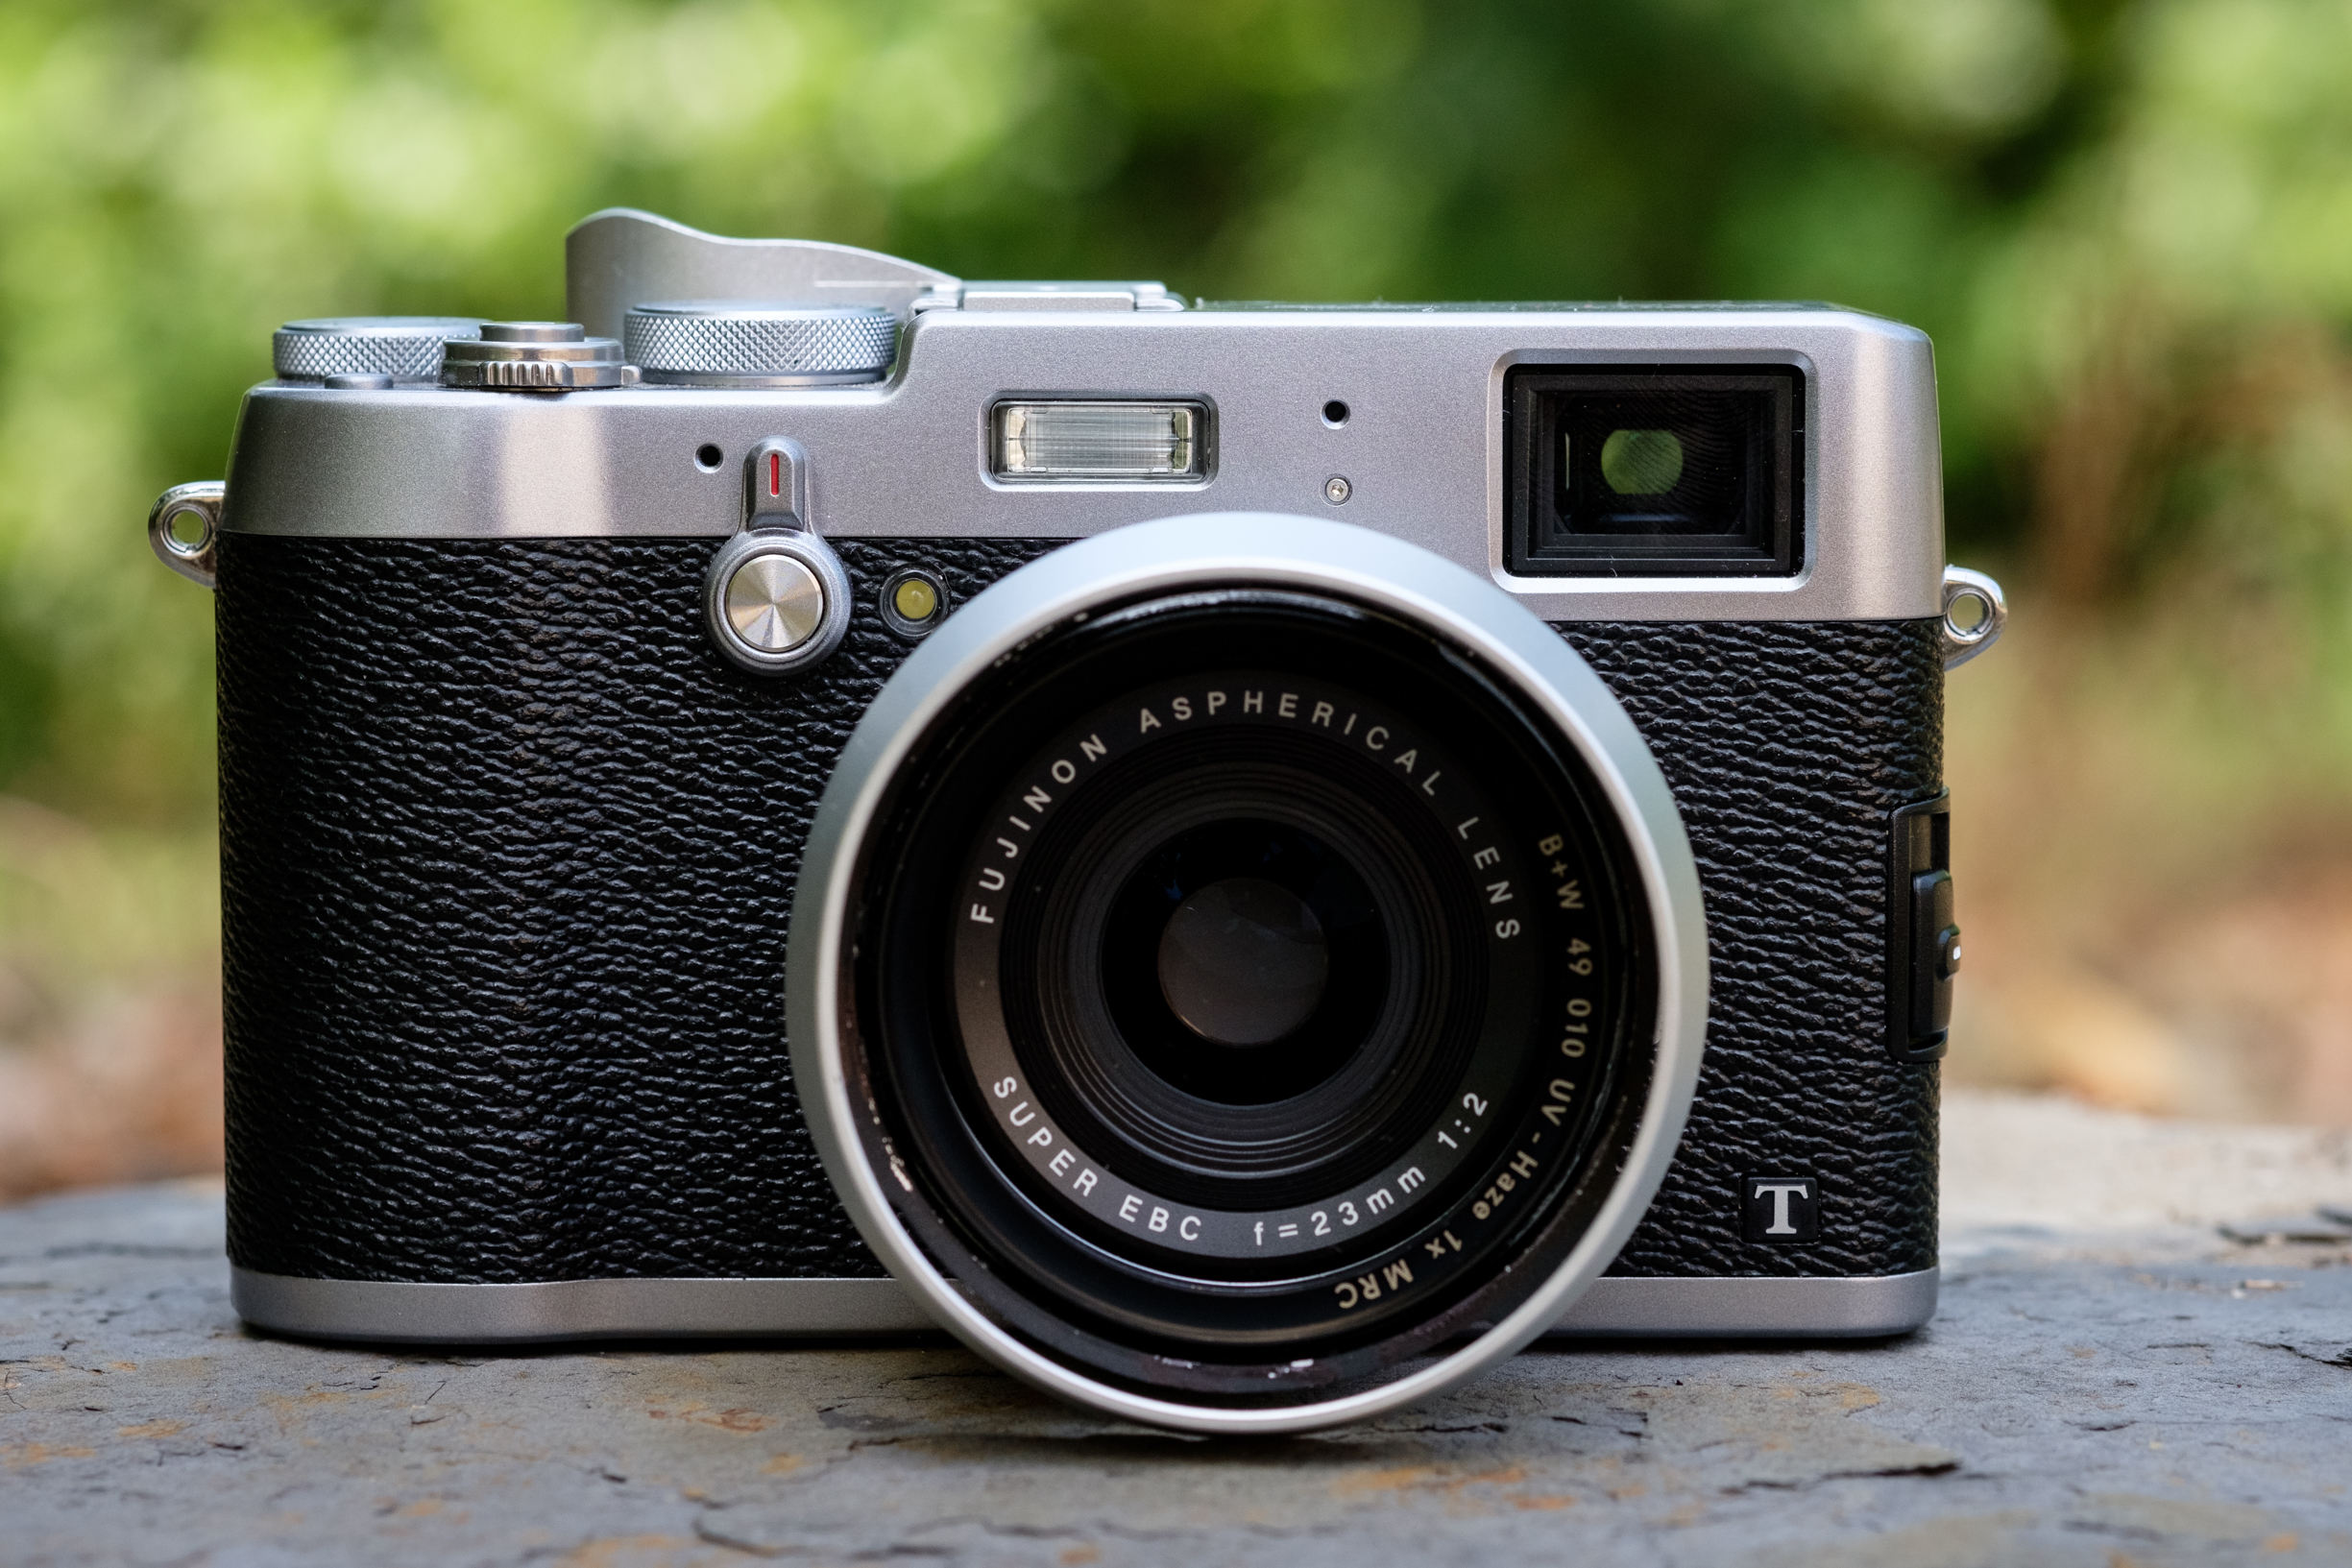 The Fujifilm X100T. This has the exact same sensor as the X-T1 so the image quality is the same. This has a fixed 23mm f/2 lens and is very small. This is an excellent travel camera and very fun to use.